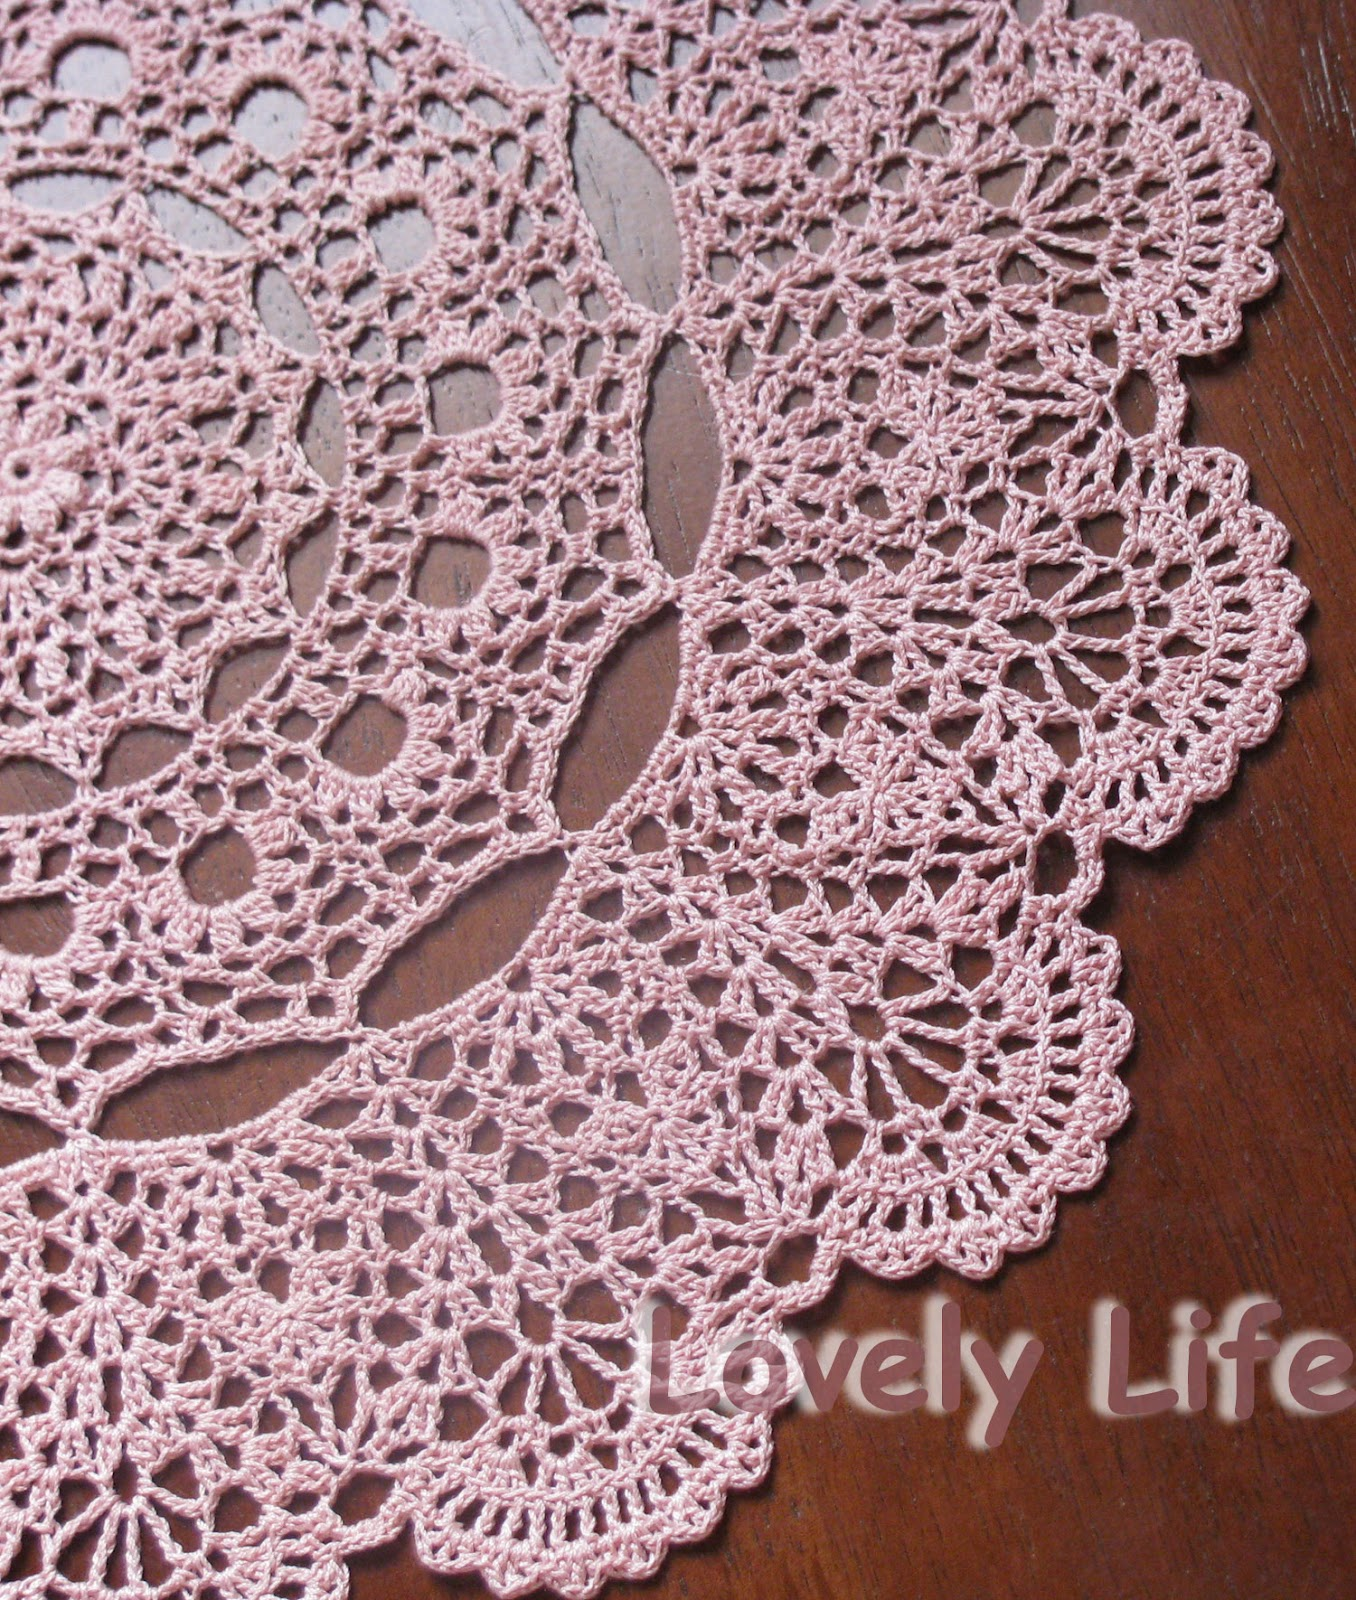 13 free crochet doily patterns for beginners cotton thread doily ...